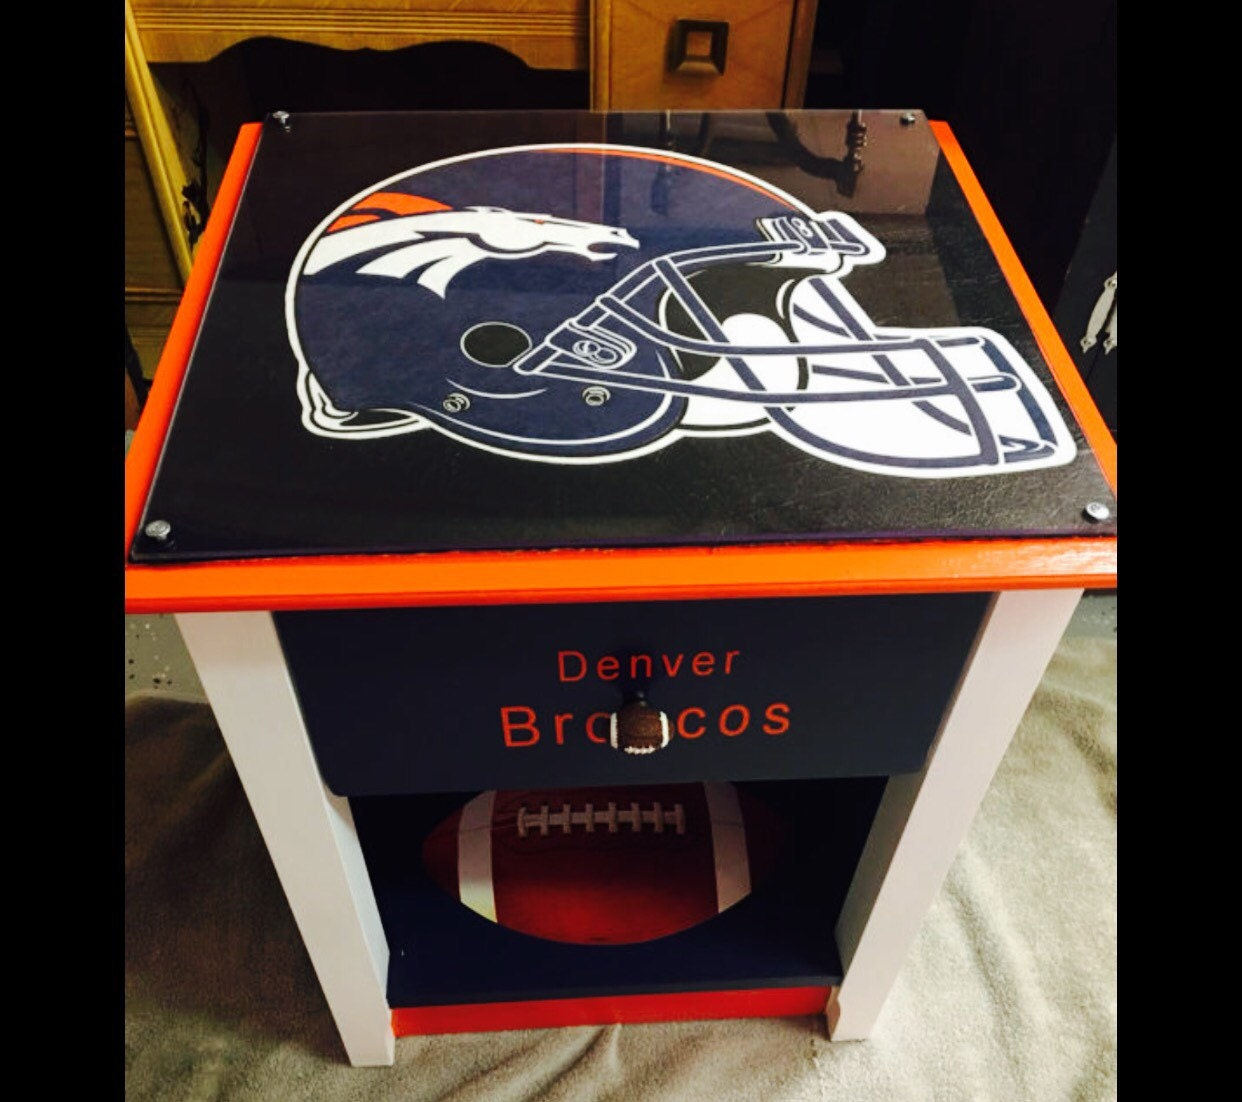 Denver Broncos Chair Denver Broncos Sports Furniture Man Cave Sports Decor